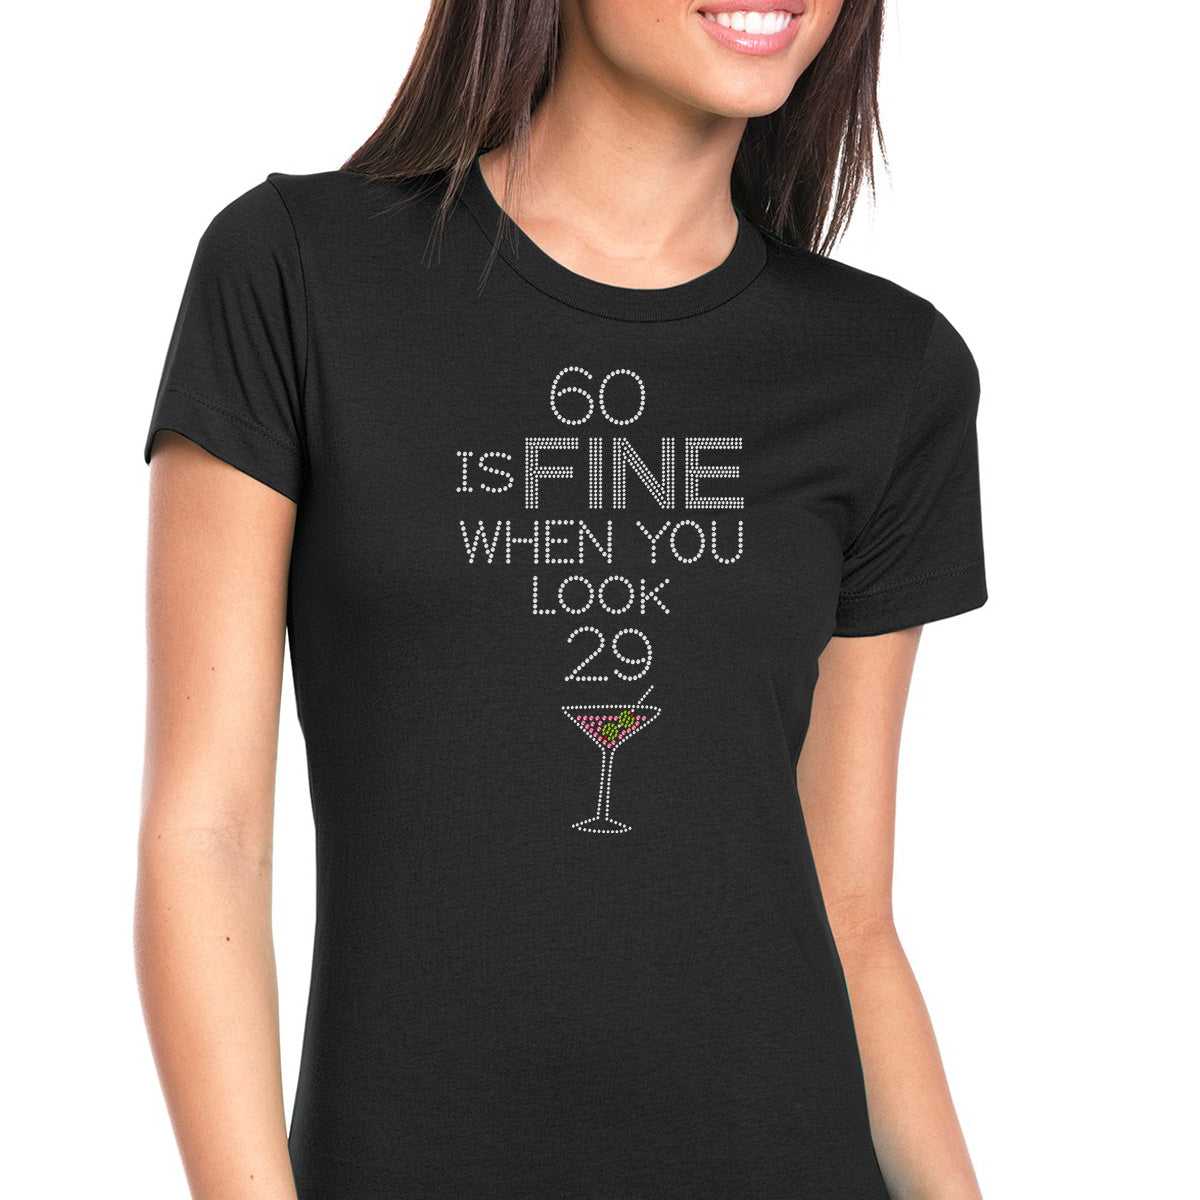 Womens T-Shirt Bling Black Fitted Tee 60 is Fine when you Look 29